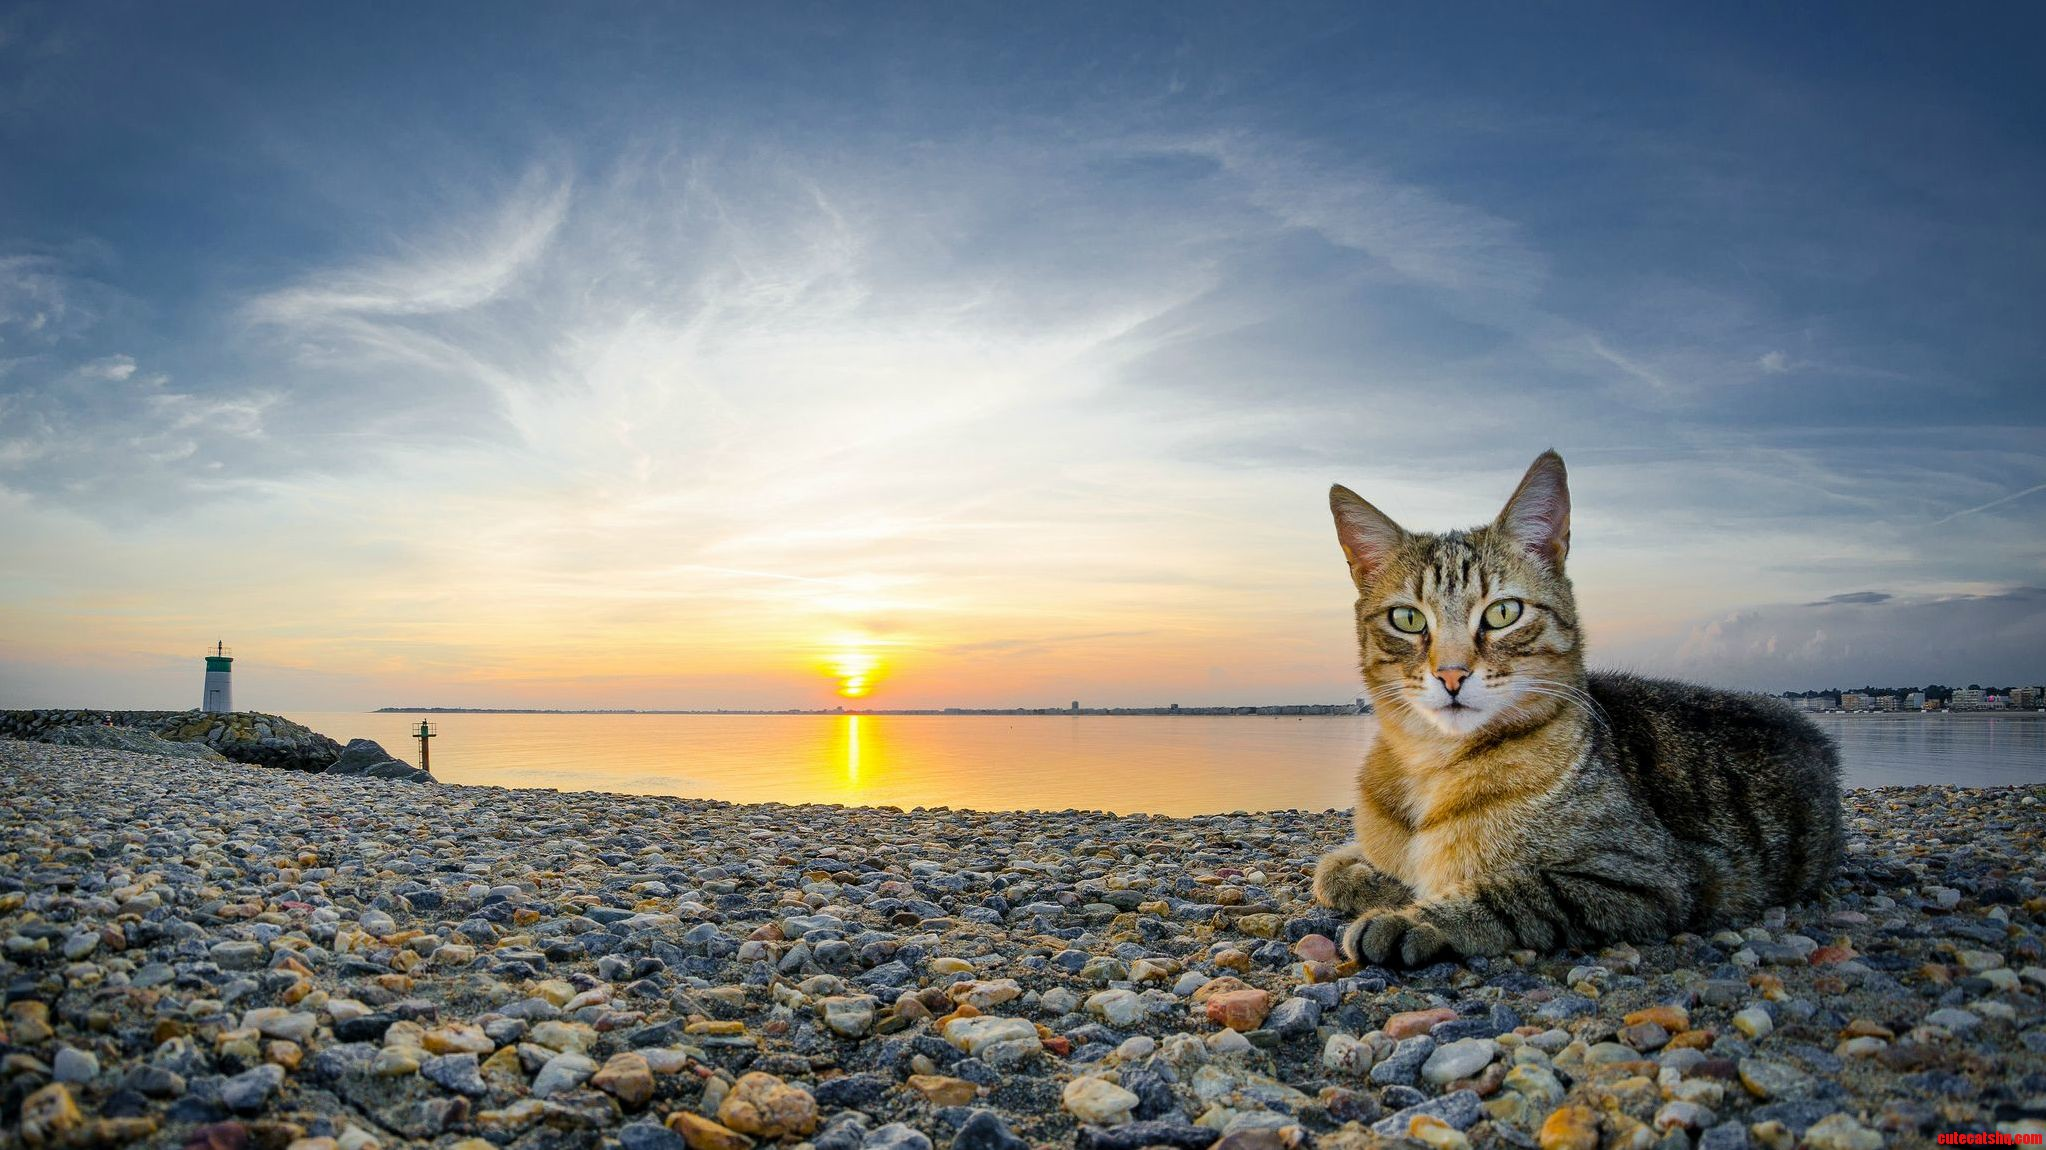 A Purrfect Sunset.